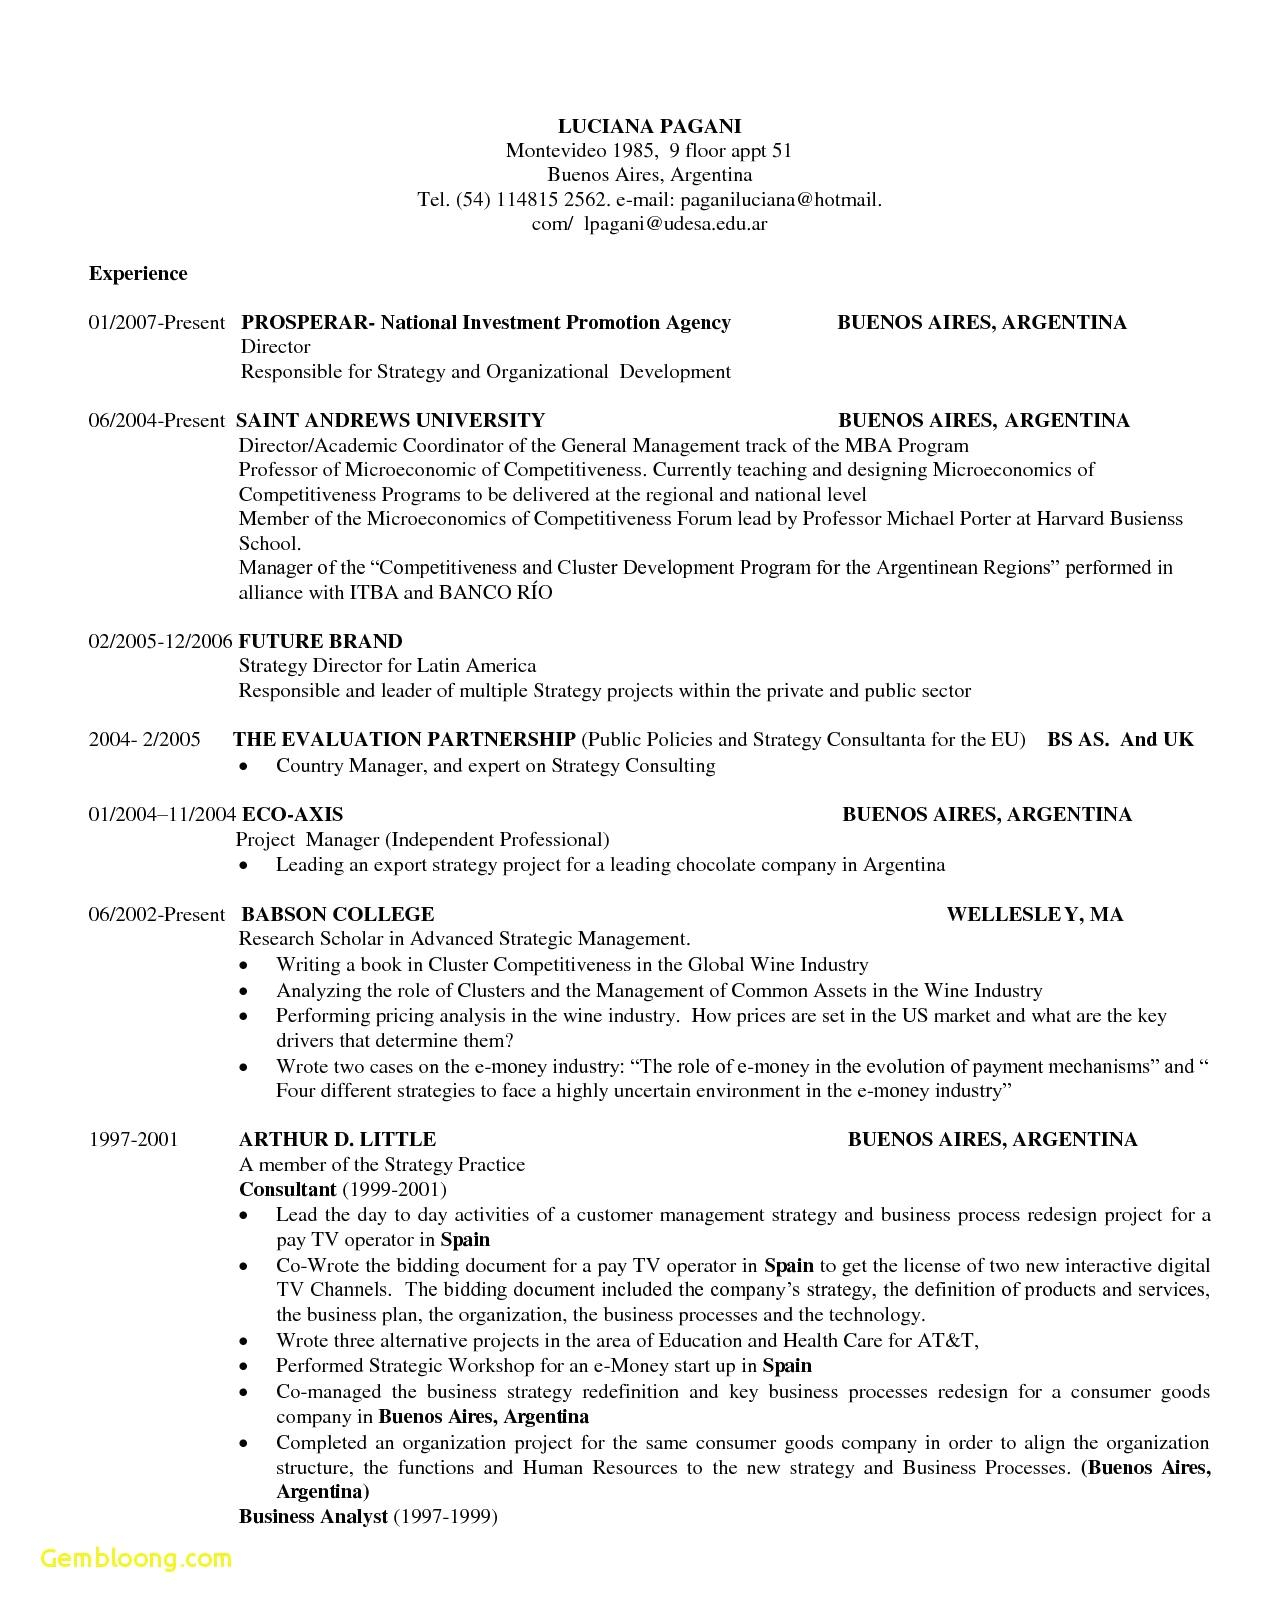 10 kelley school of business resume template samples